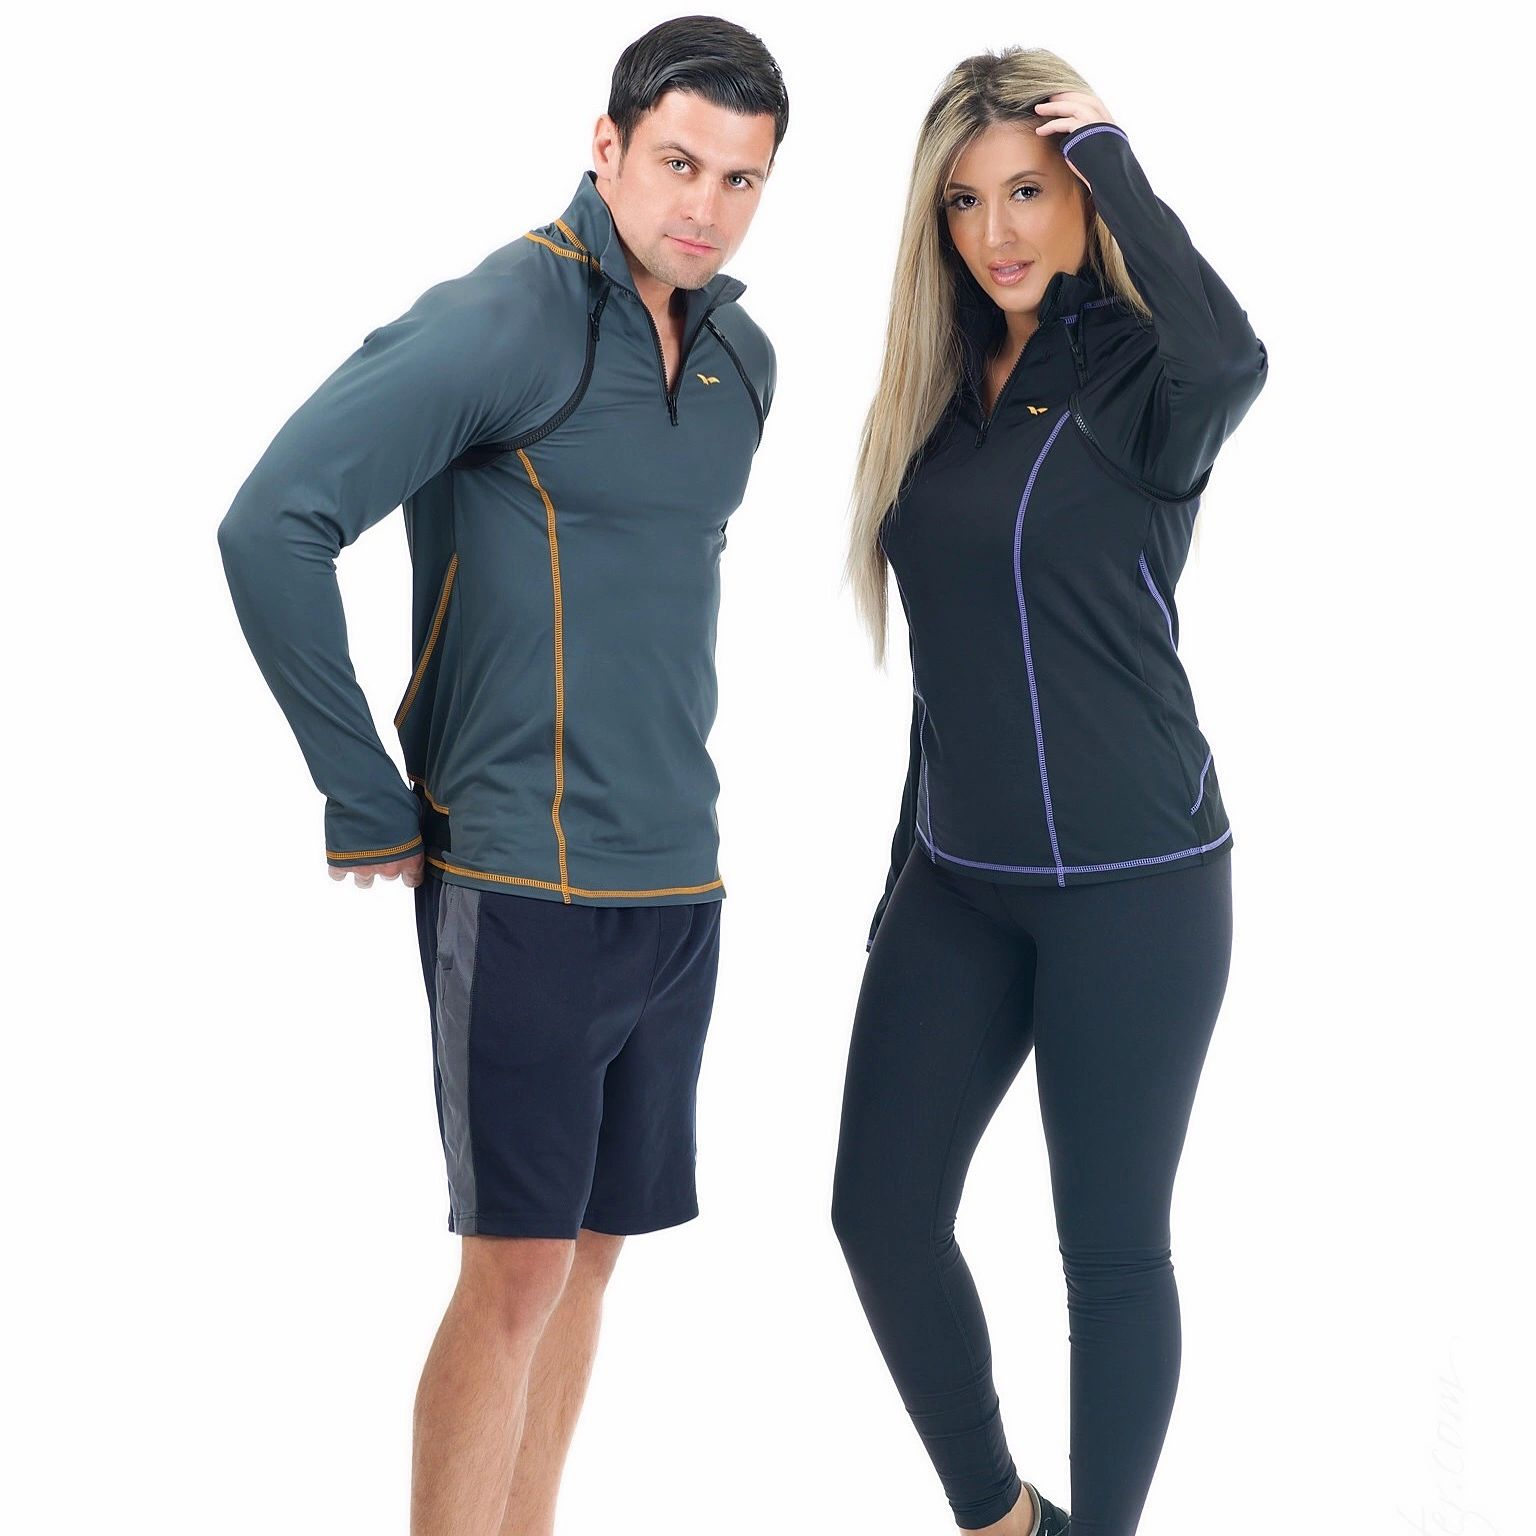 athletic apparel manufacturer, sports nutrition developer, fitness wear, technical sportswear